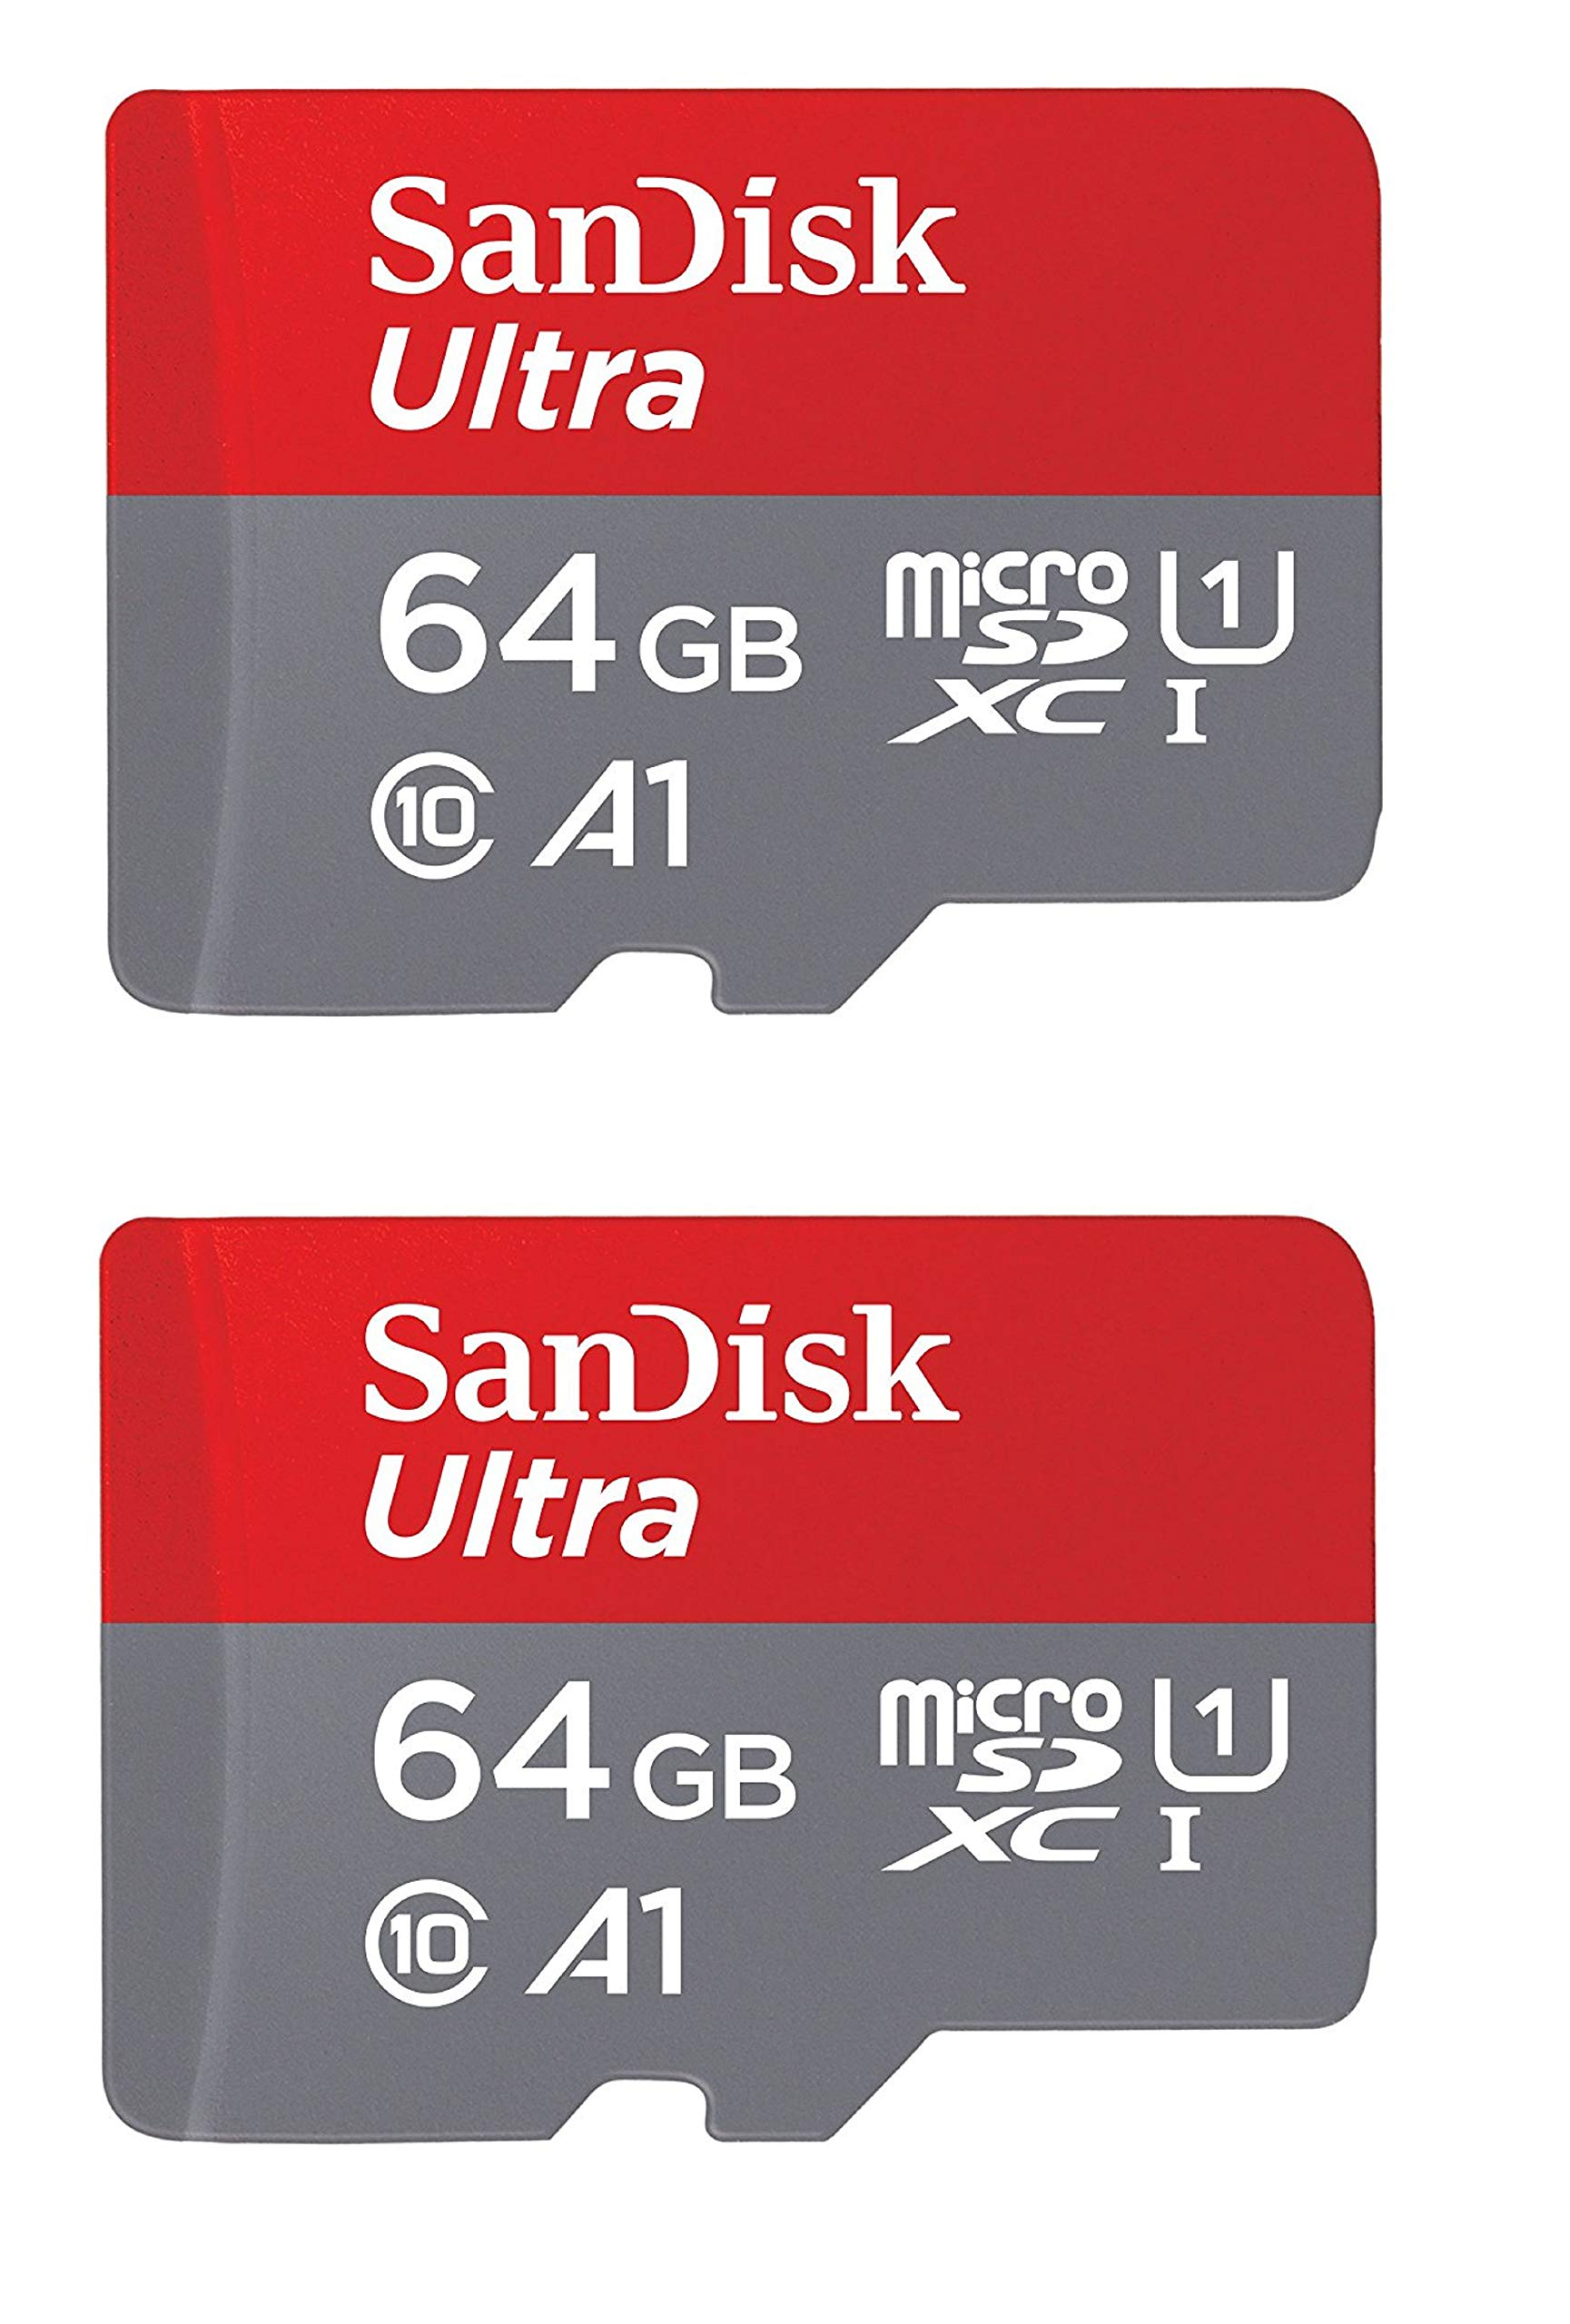 SanDisk Ultra Plus 64GB microSDXC UHS-I Card with SD Adapter, Grey/Red, Full HD up to 100 MB/S For Android Phone, Tables and Camera (2 Pack of 64 GB Micro SD- Card) by SanDisk